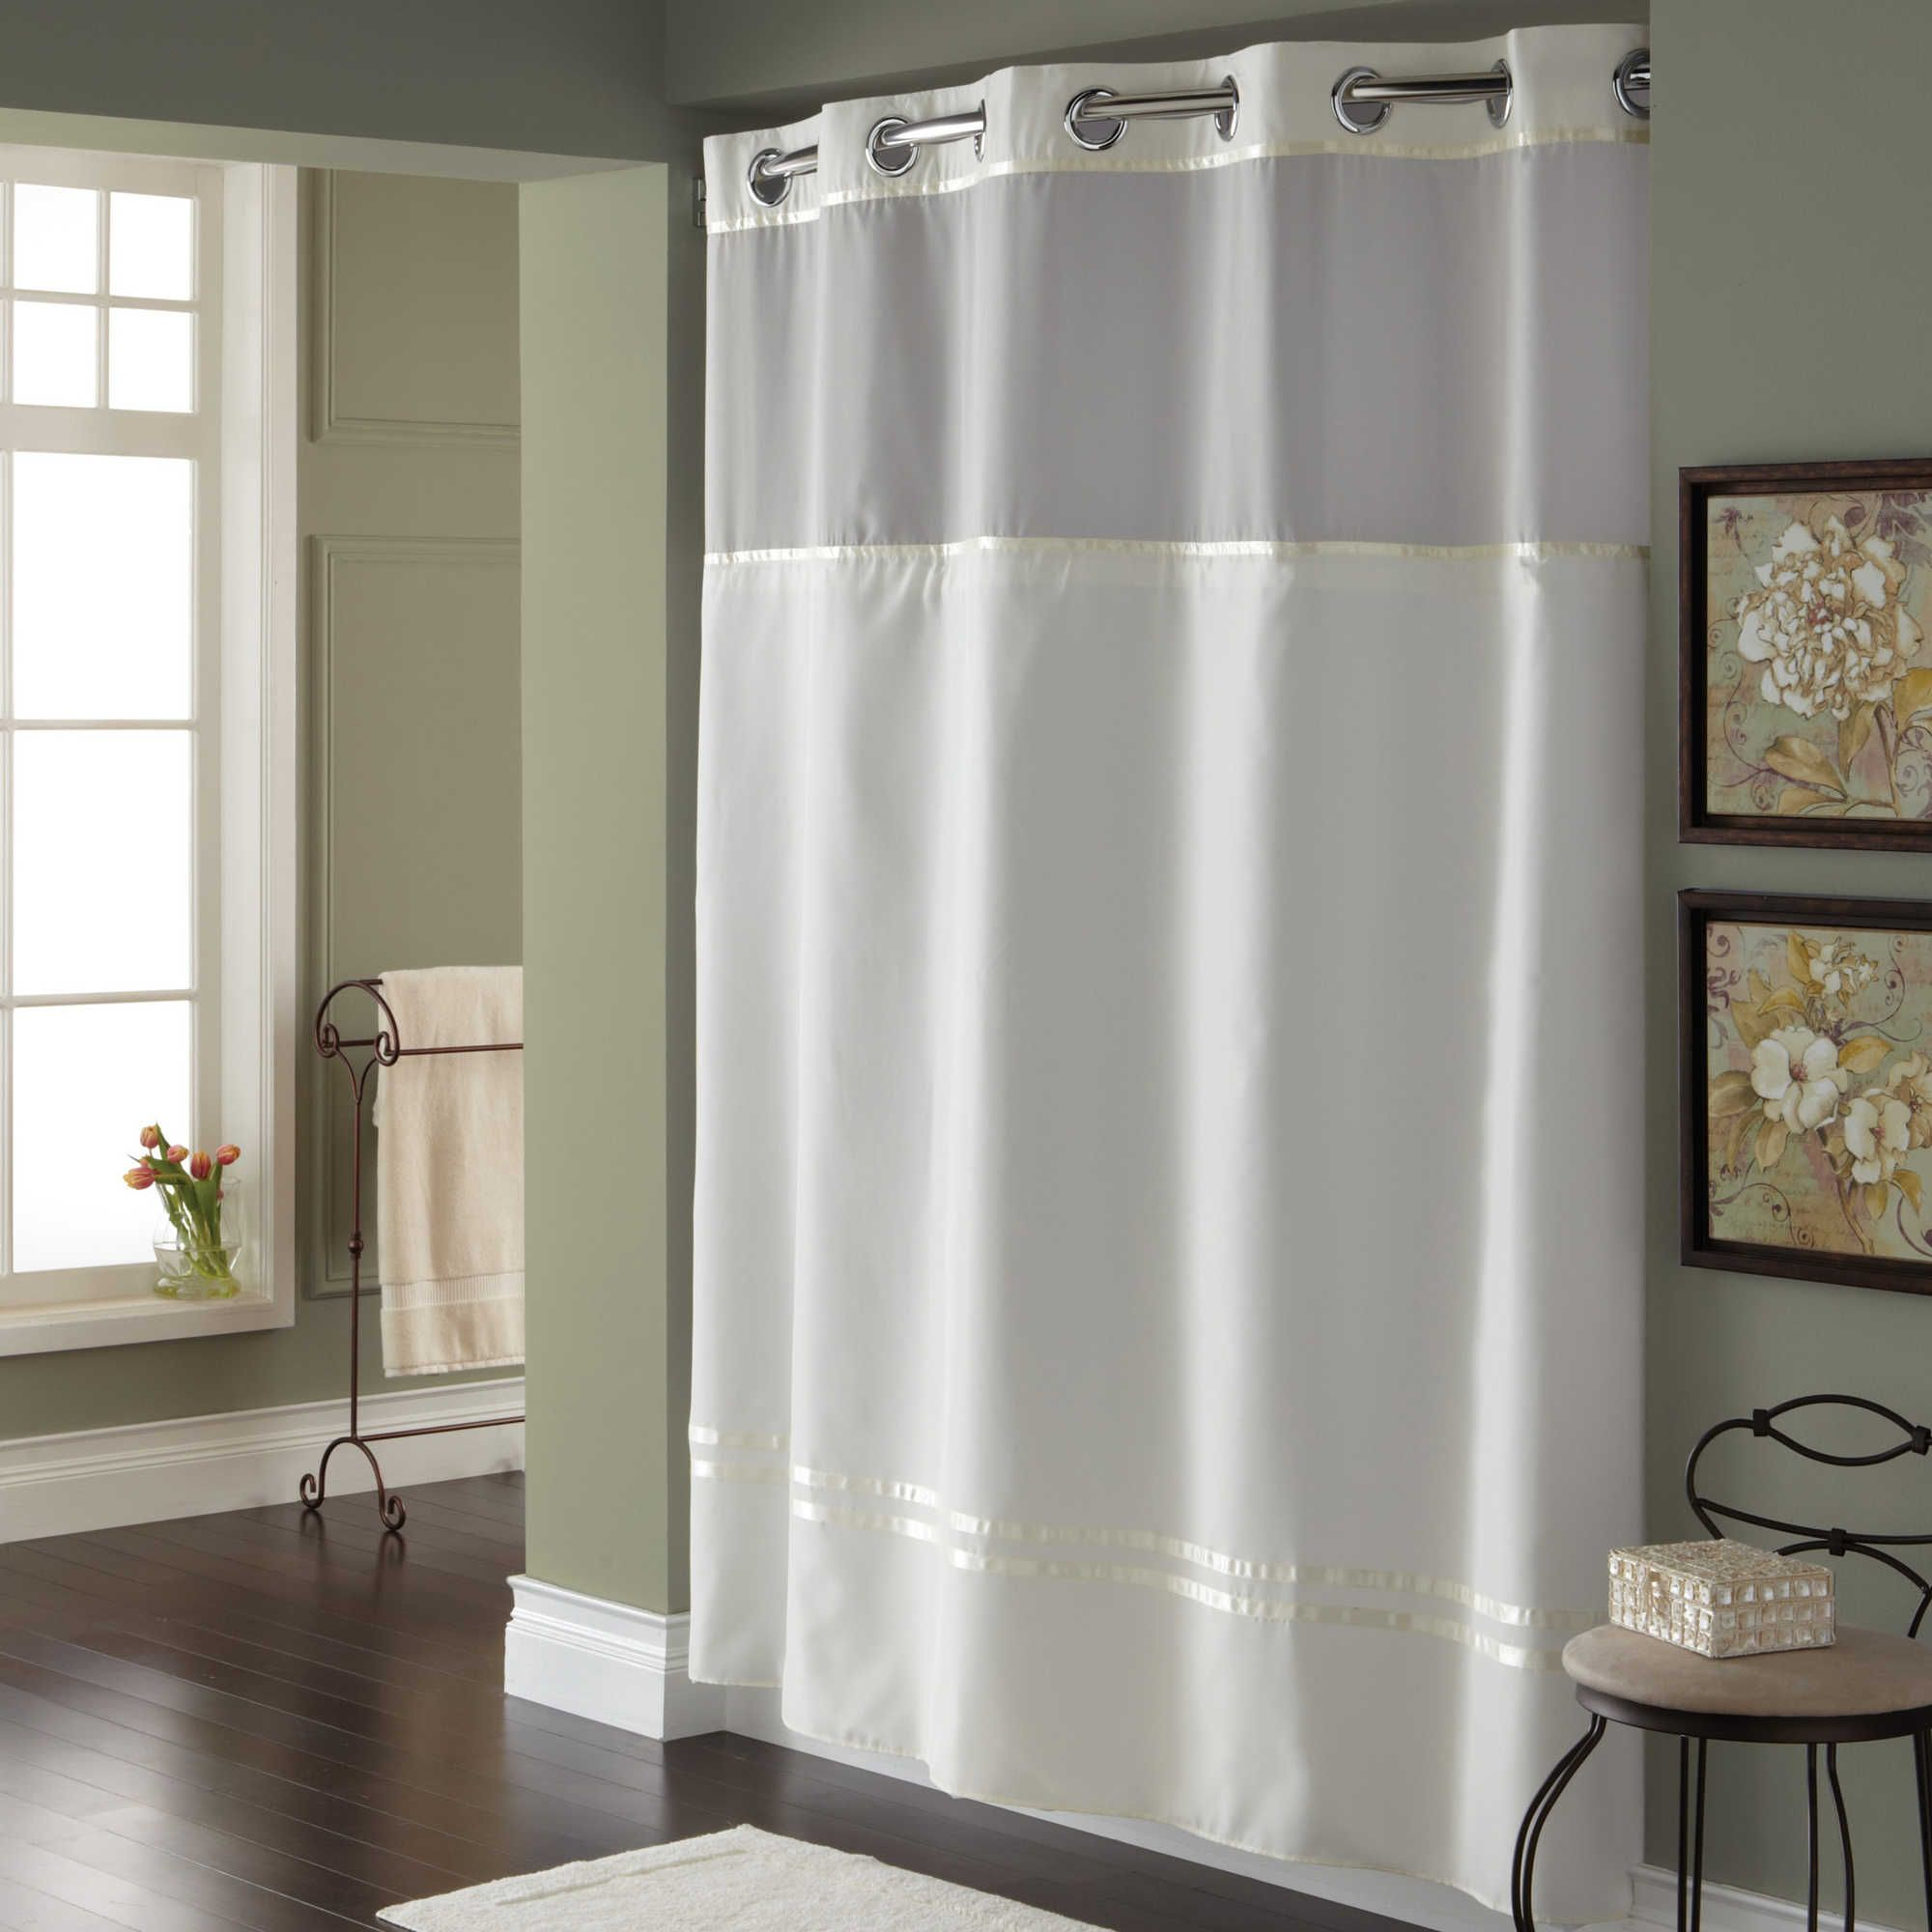 Hookless Escape 54 Inch X 80 Inch Stall Fabric Shower Curtain And Liner Set In White Hookless Shower Curtain